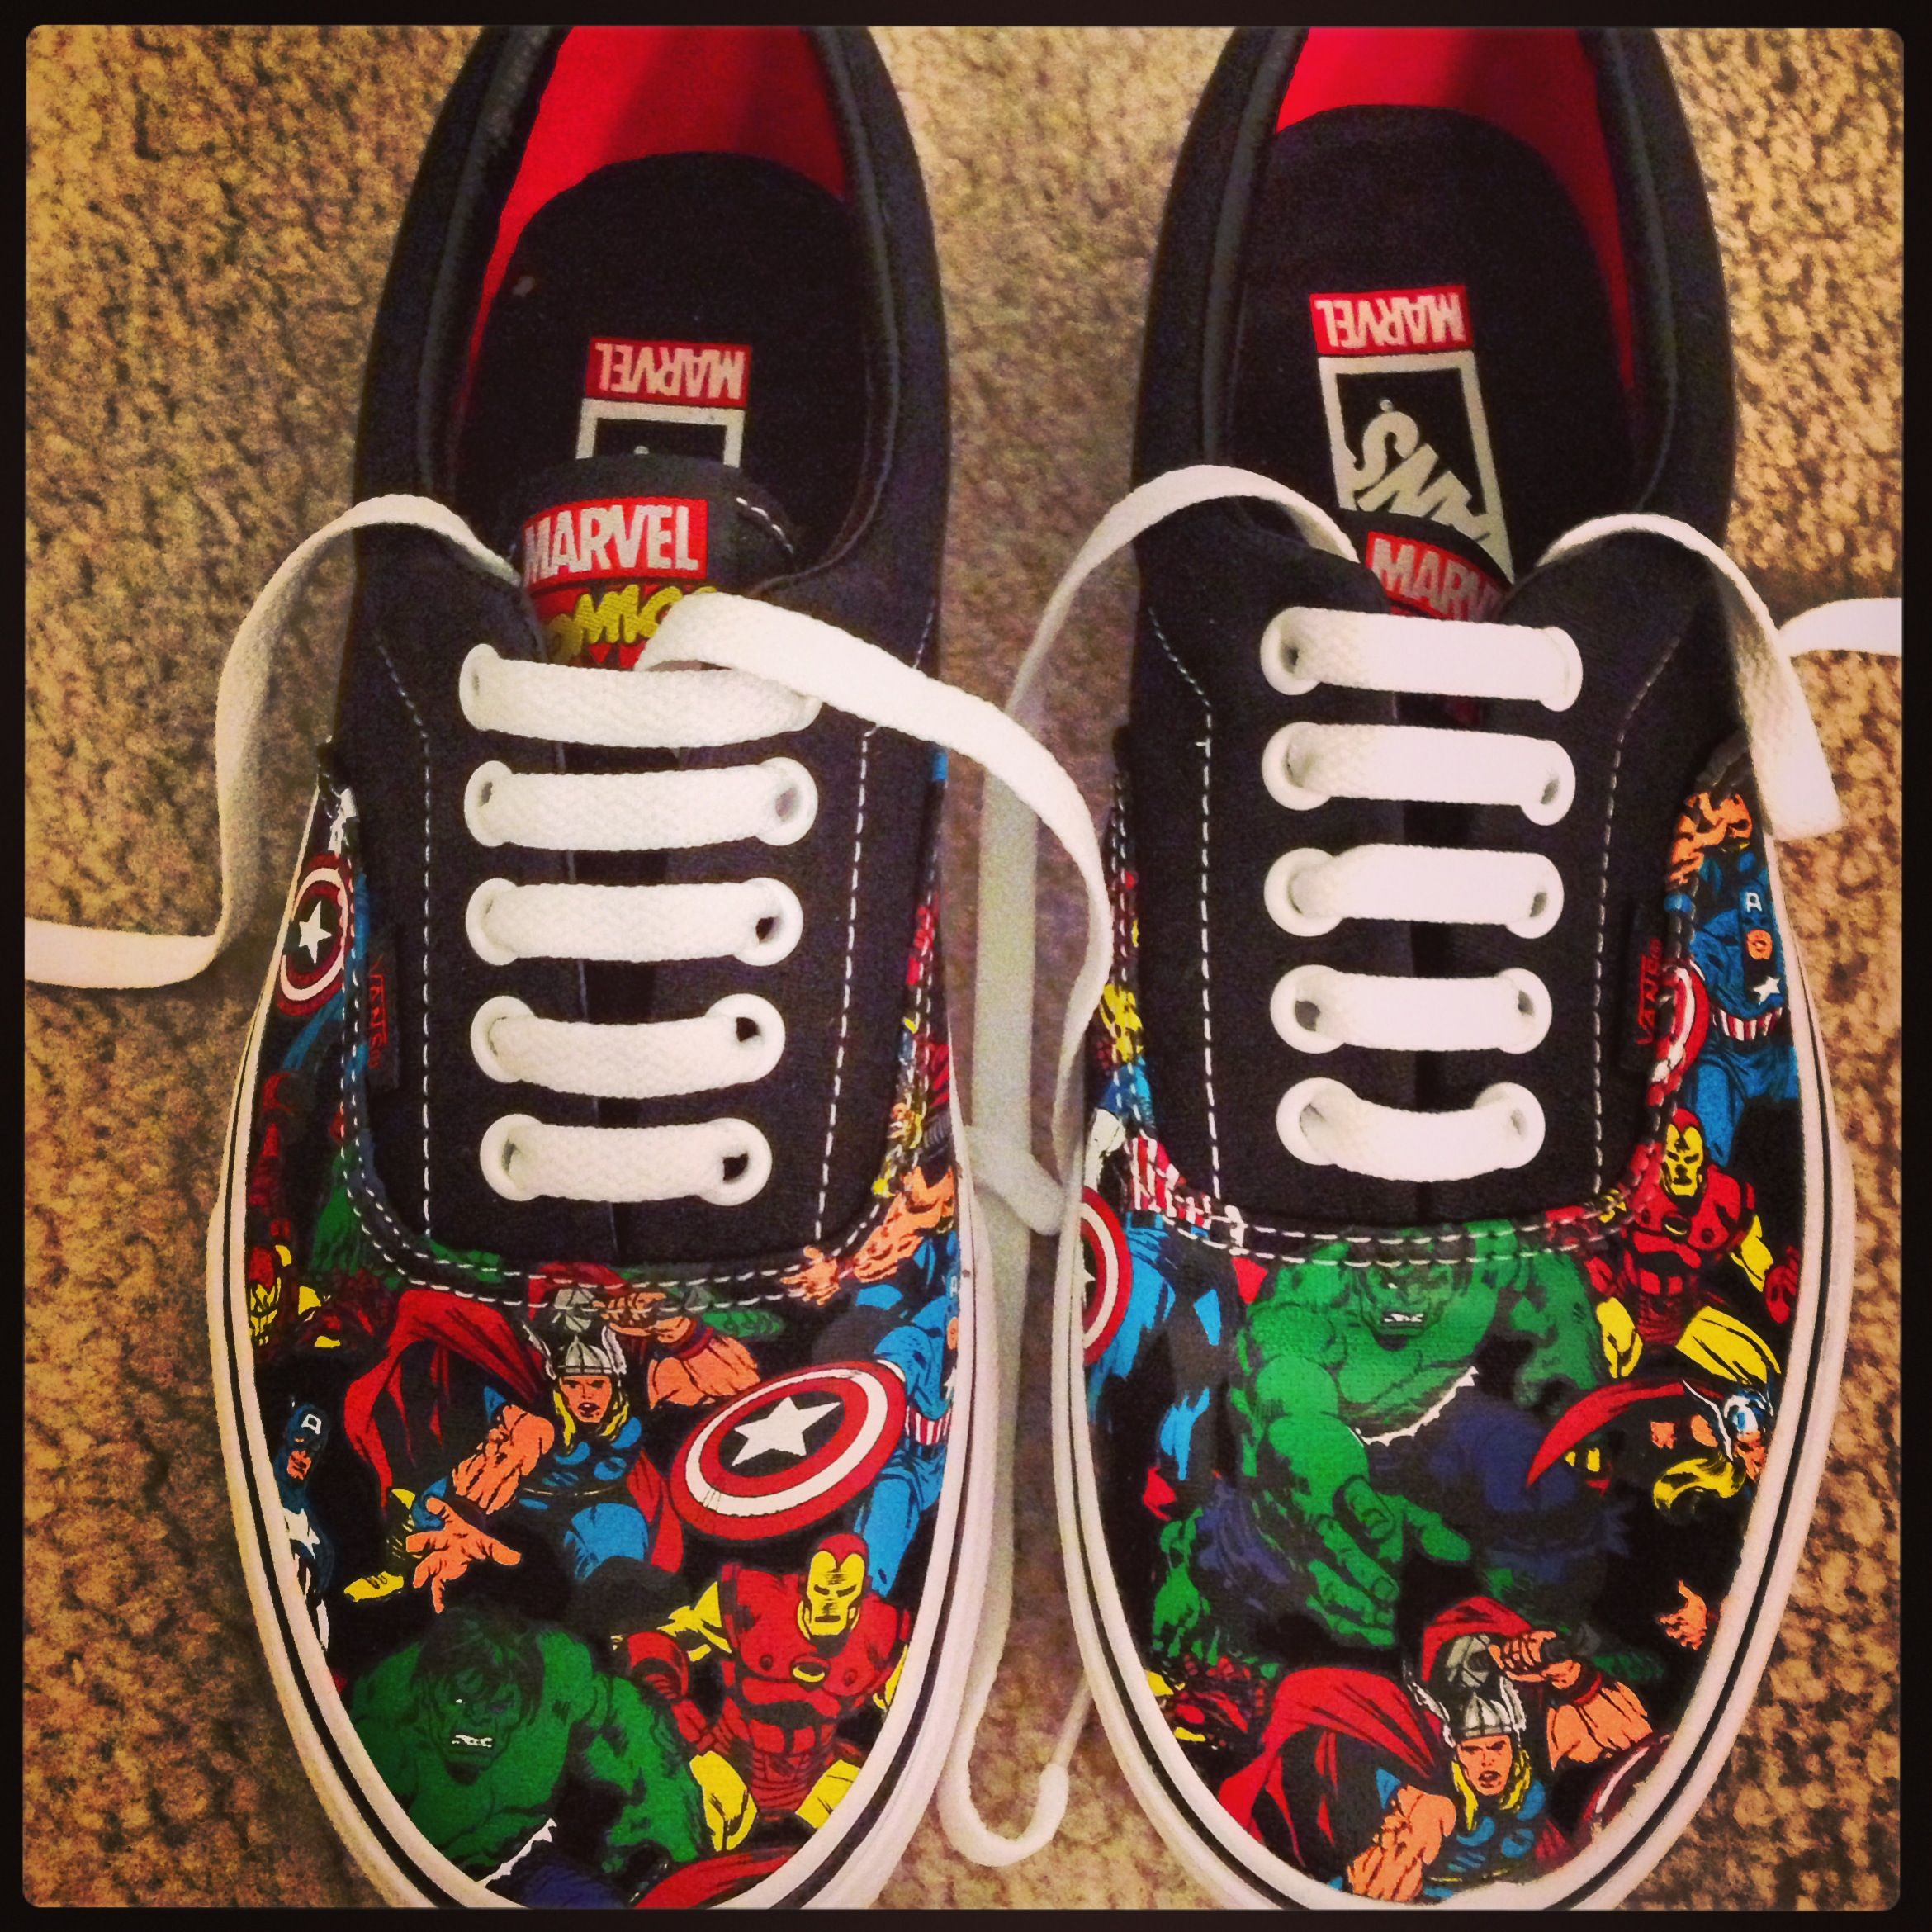 b16437572a6 Avengers shoes by Vans. For the Marvel freak in all of us  )